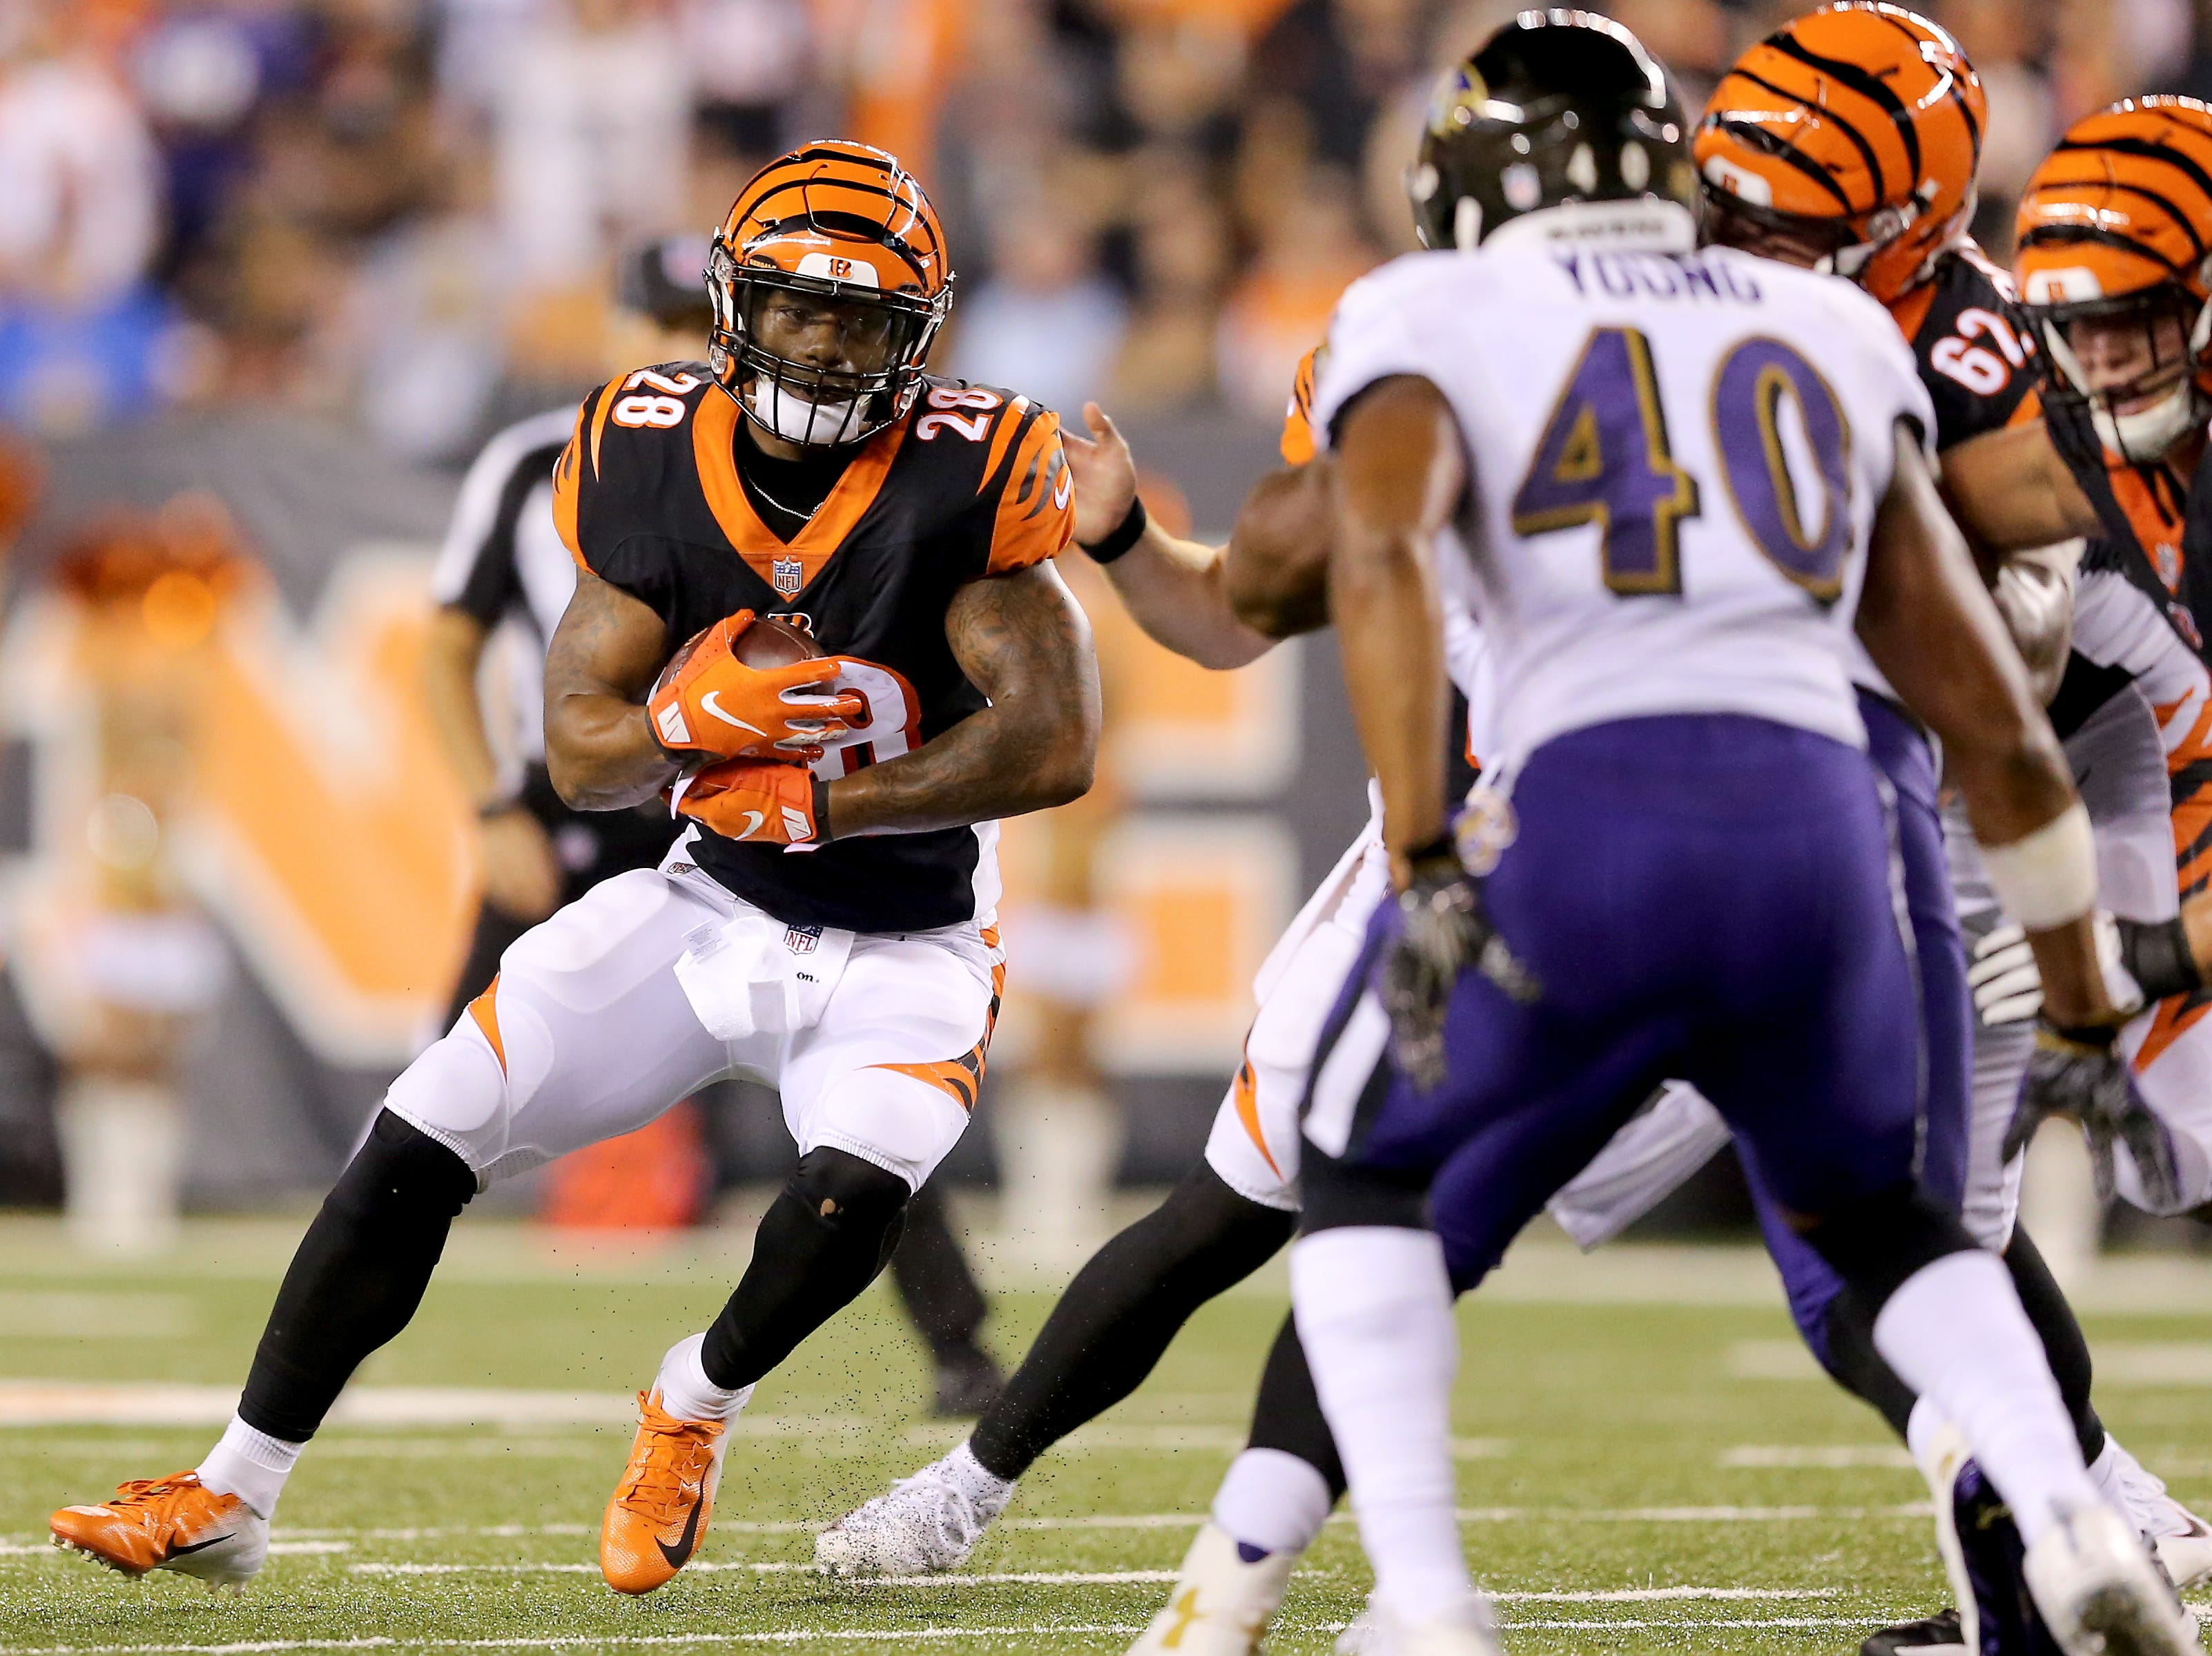 Cincinnati Bengals running back Joe Mixon (28) carries the ball in the first quarter during the Week 2 NFL football game between the Baltimore Ravens and the Cincinnati Bengals, Thursday, Sept. 13, 2018, Paul Brown Stadium in Cincinnati.